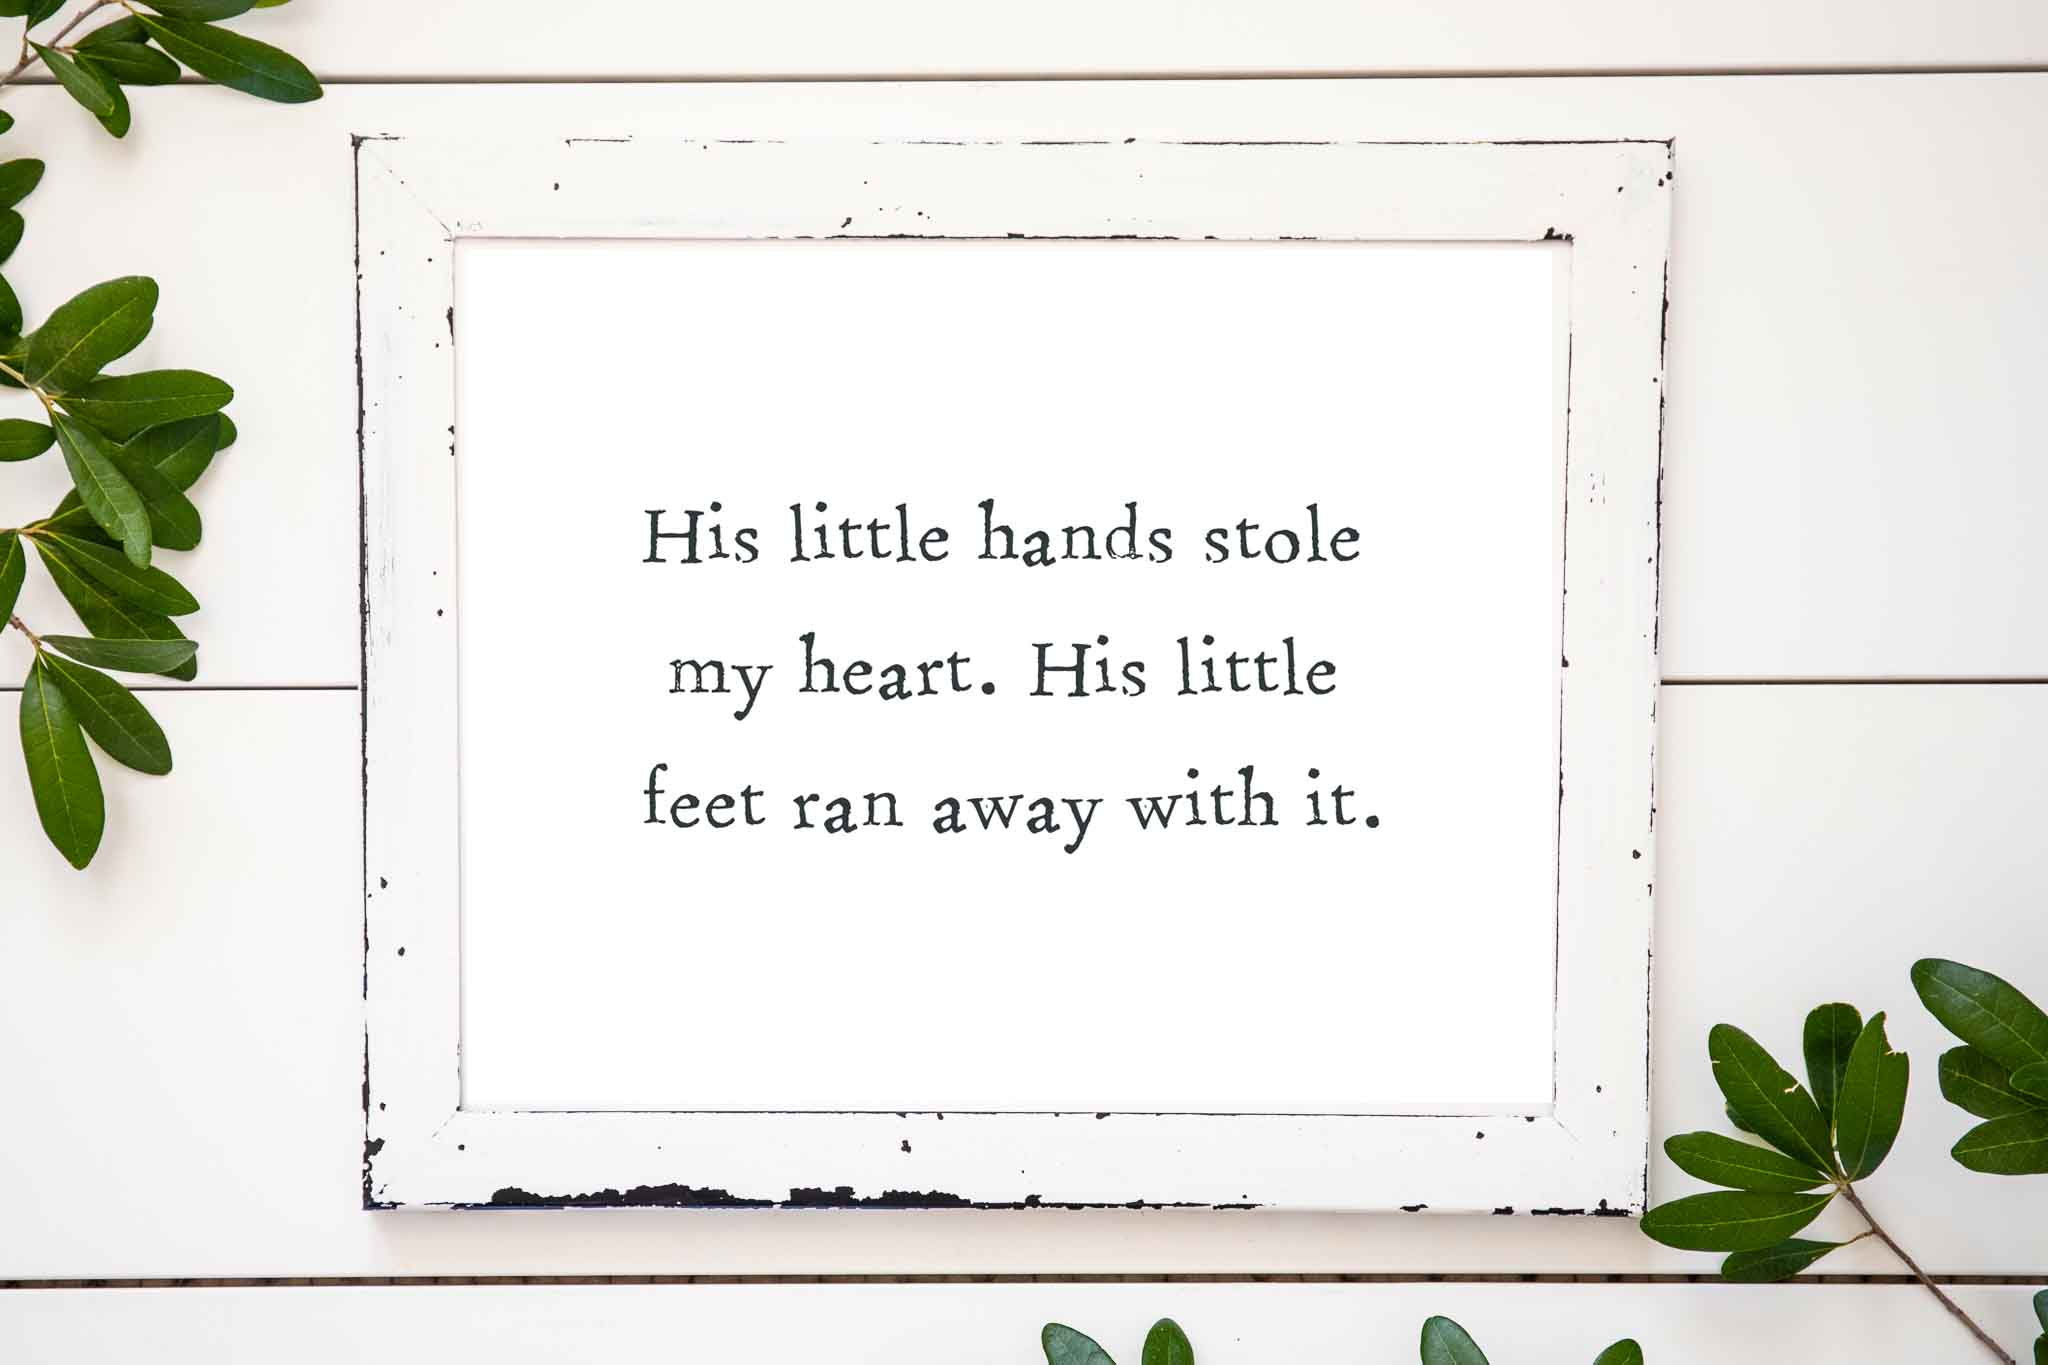 his little hand stole my heart his little feet ran away with it